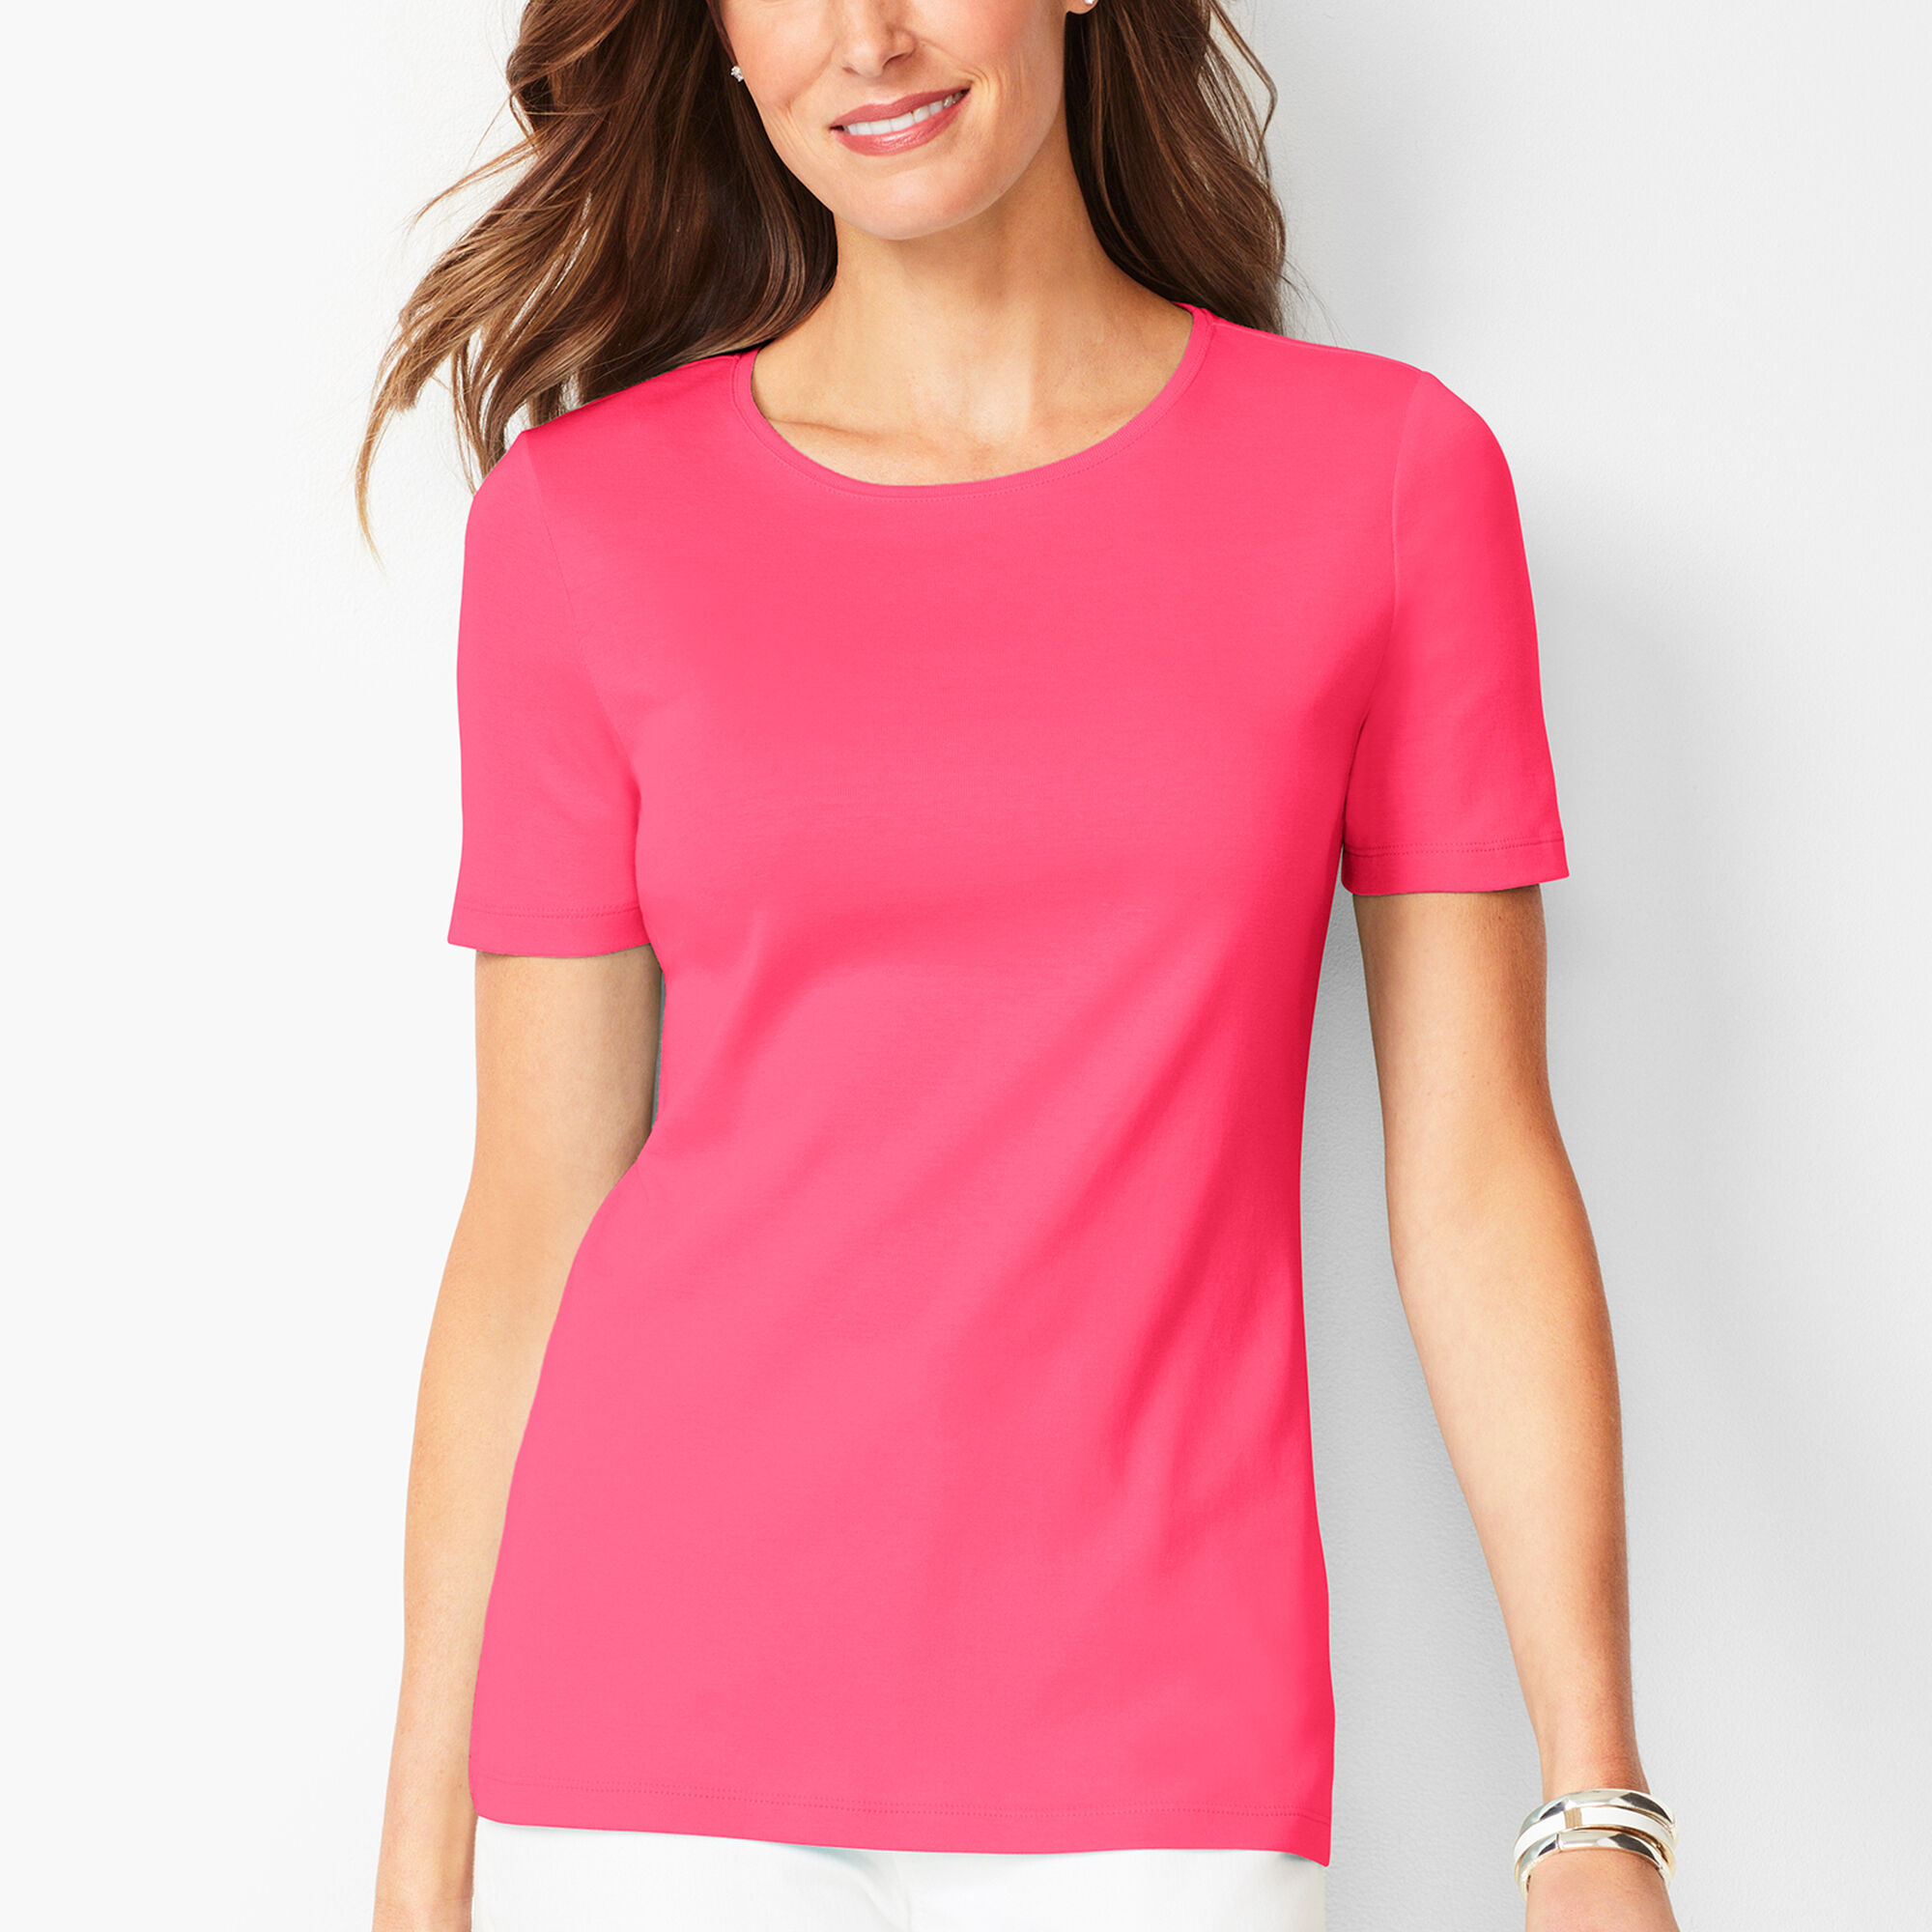 841ce439 Pima Cotton Crewneck Tee - Solid Opens a New Window.